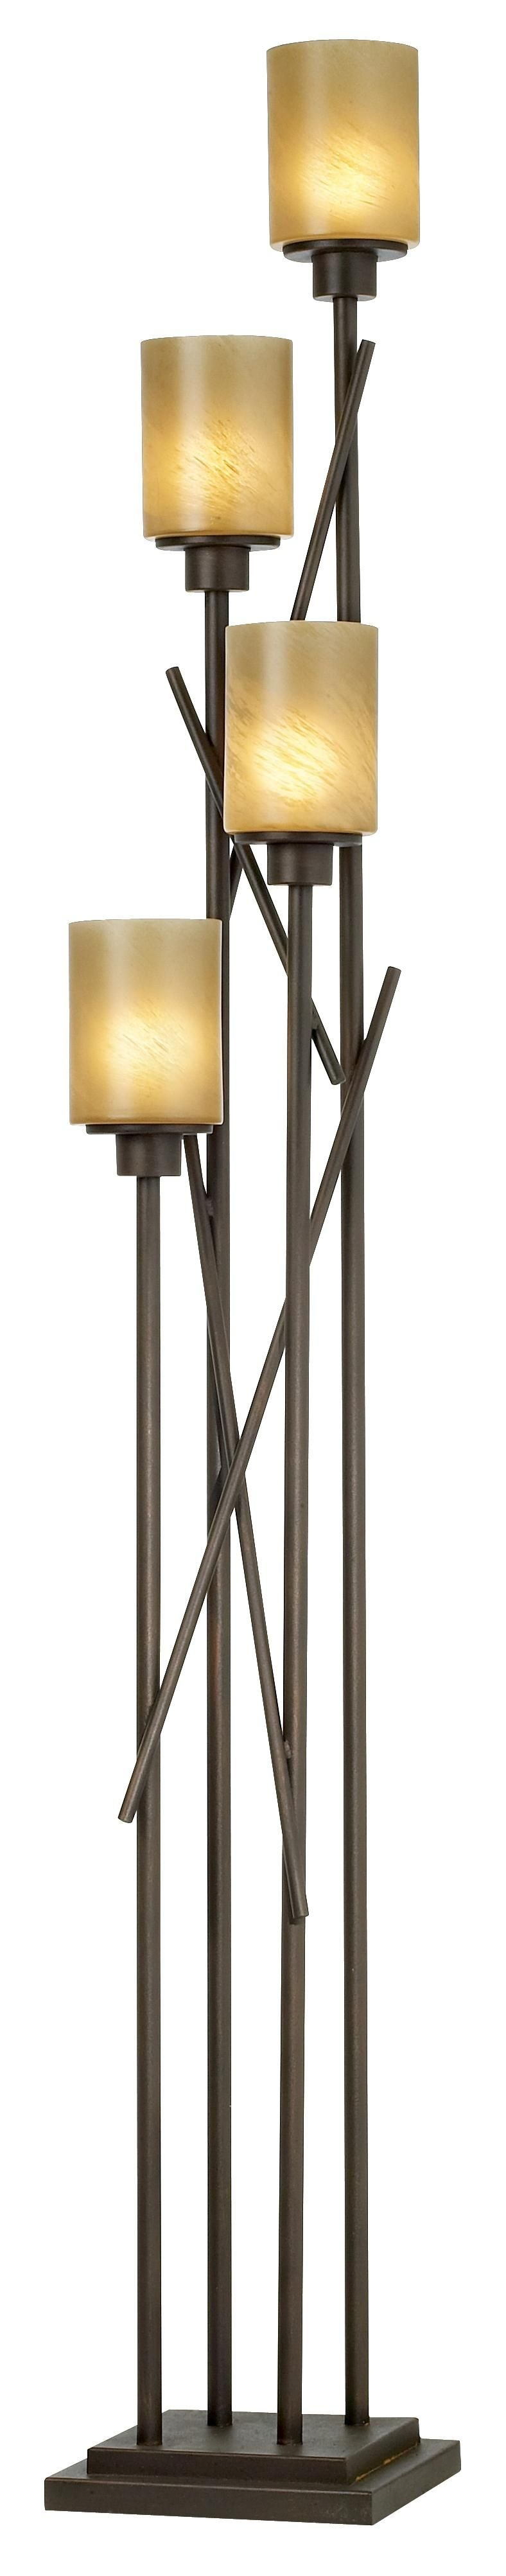 Kathy Ireland Home by Pacific Coast Lighting Lamps and Lighting City Crossings Floor Uplight 85 ...